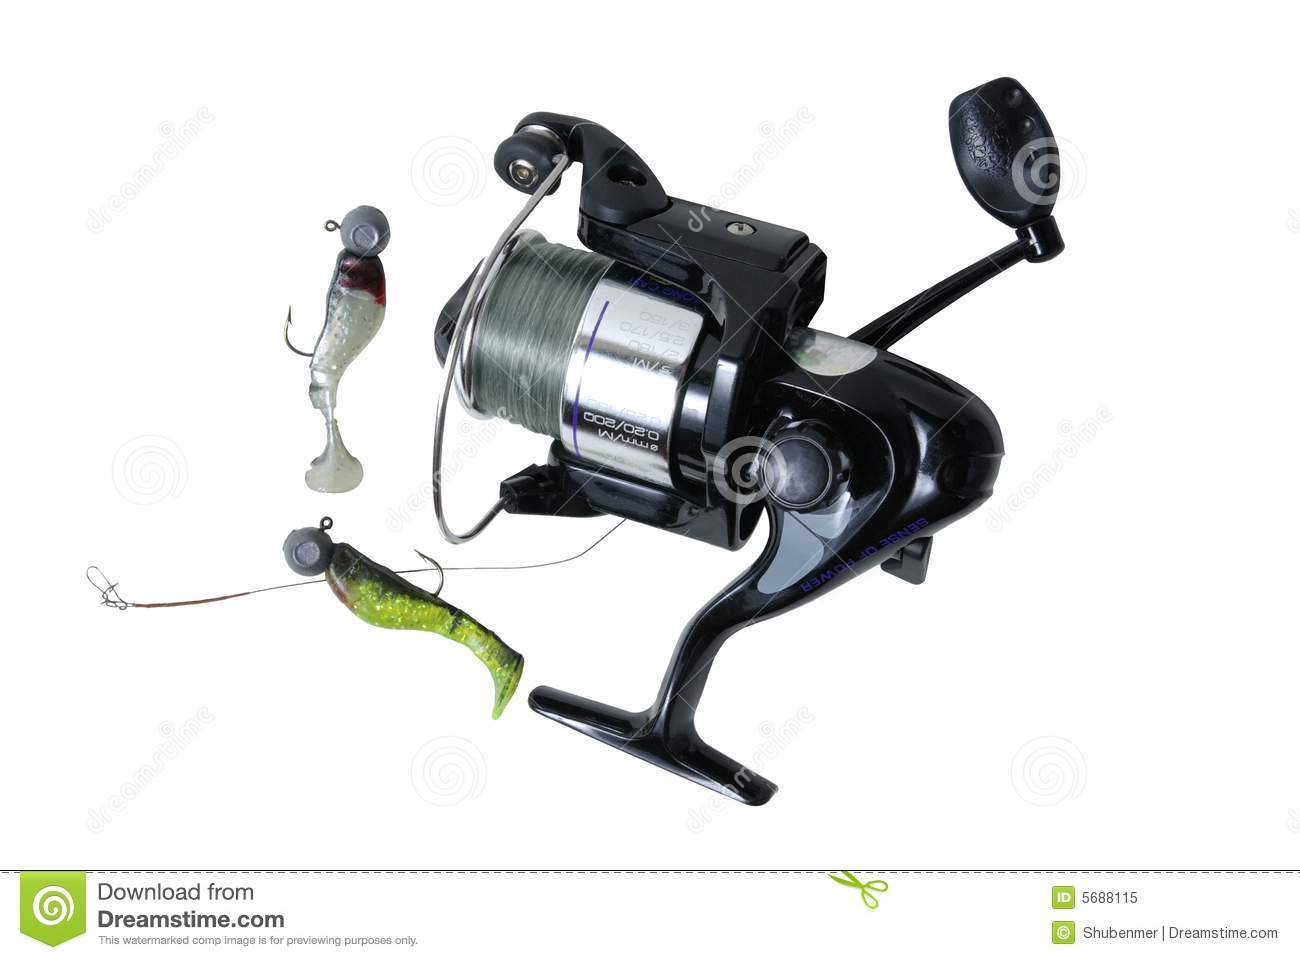 Fishing equipment stock image. Image of relaxation, fish ...